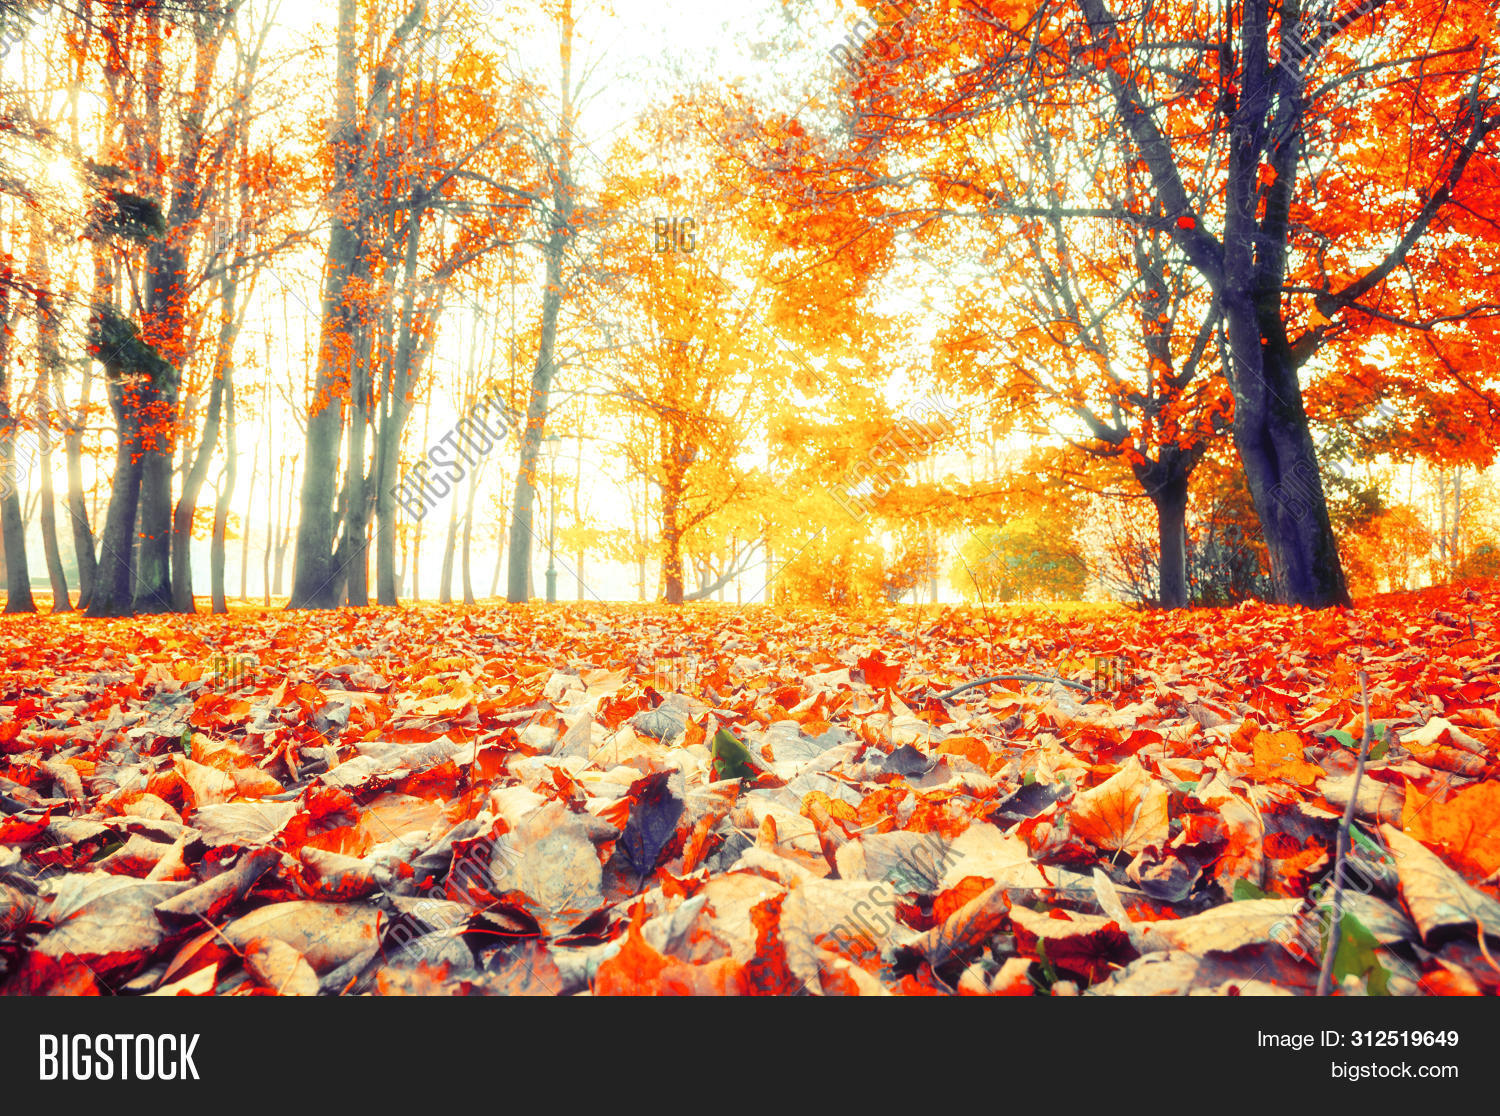 November,October,September,alley,autumn,beautiful,bright,city,cloudy,day,dry,fall,fallen,foliage,footpath,foreground,forest,gold,grove,landscape,leaves,lonely,nature,panorama,park,path,red,fall-forest,fall-landscape,fall-nature,fall-scene,fall-trees,fall-background,fall-leaves,fall-park,fall-outdoors,fall-leaf,fall-alley,fall-sunset,russian,scene,season,soft,stunning,tree,view,wallpaper,weather,yellow,yellowed